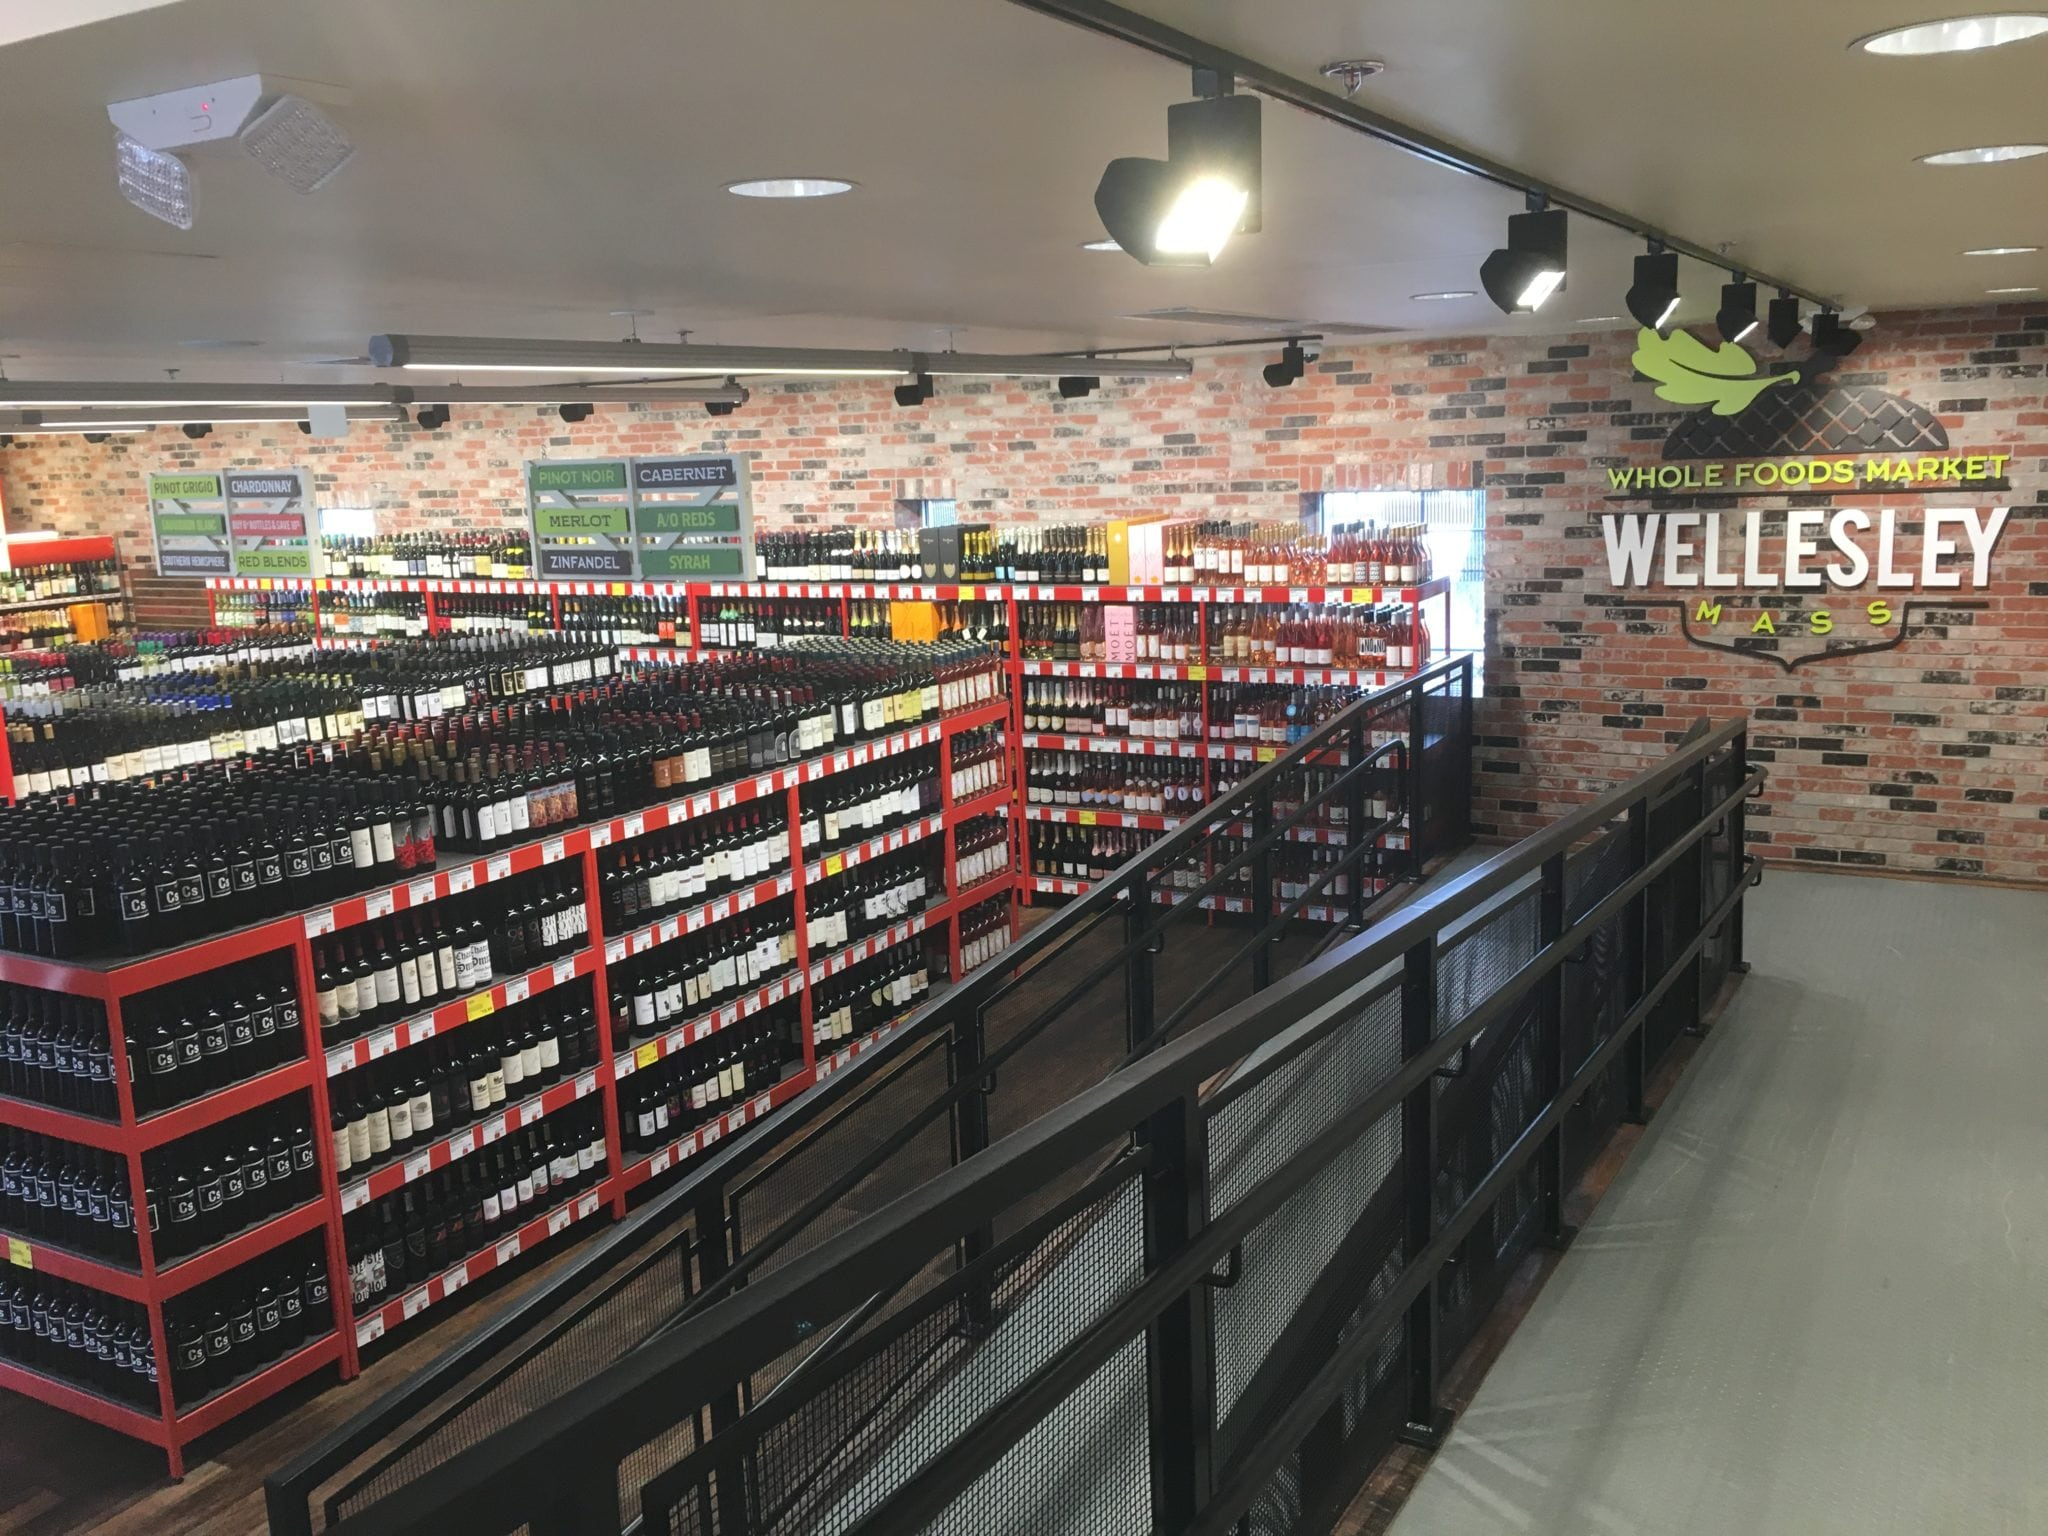 Whole Foods Wellesley beer and wine